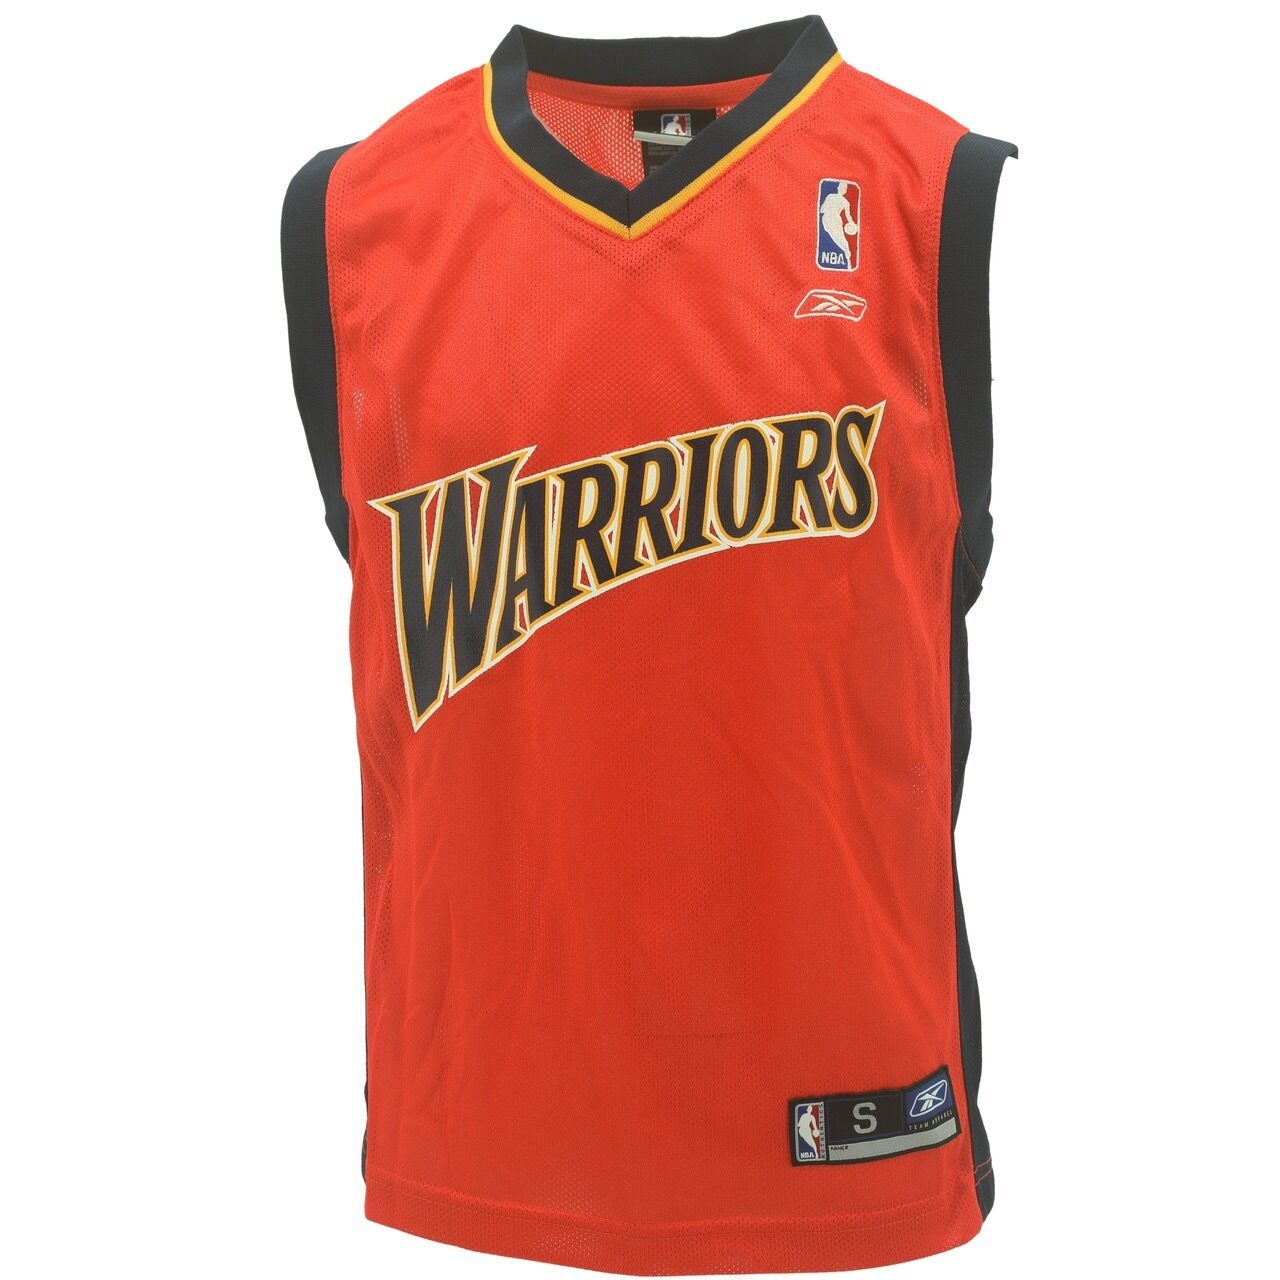 more photos 8291a bca07 Details about NBA Golden State Warriors Youth Size Throwback Vintage Style  Jersey New W Tags